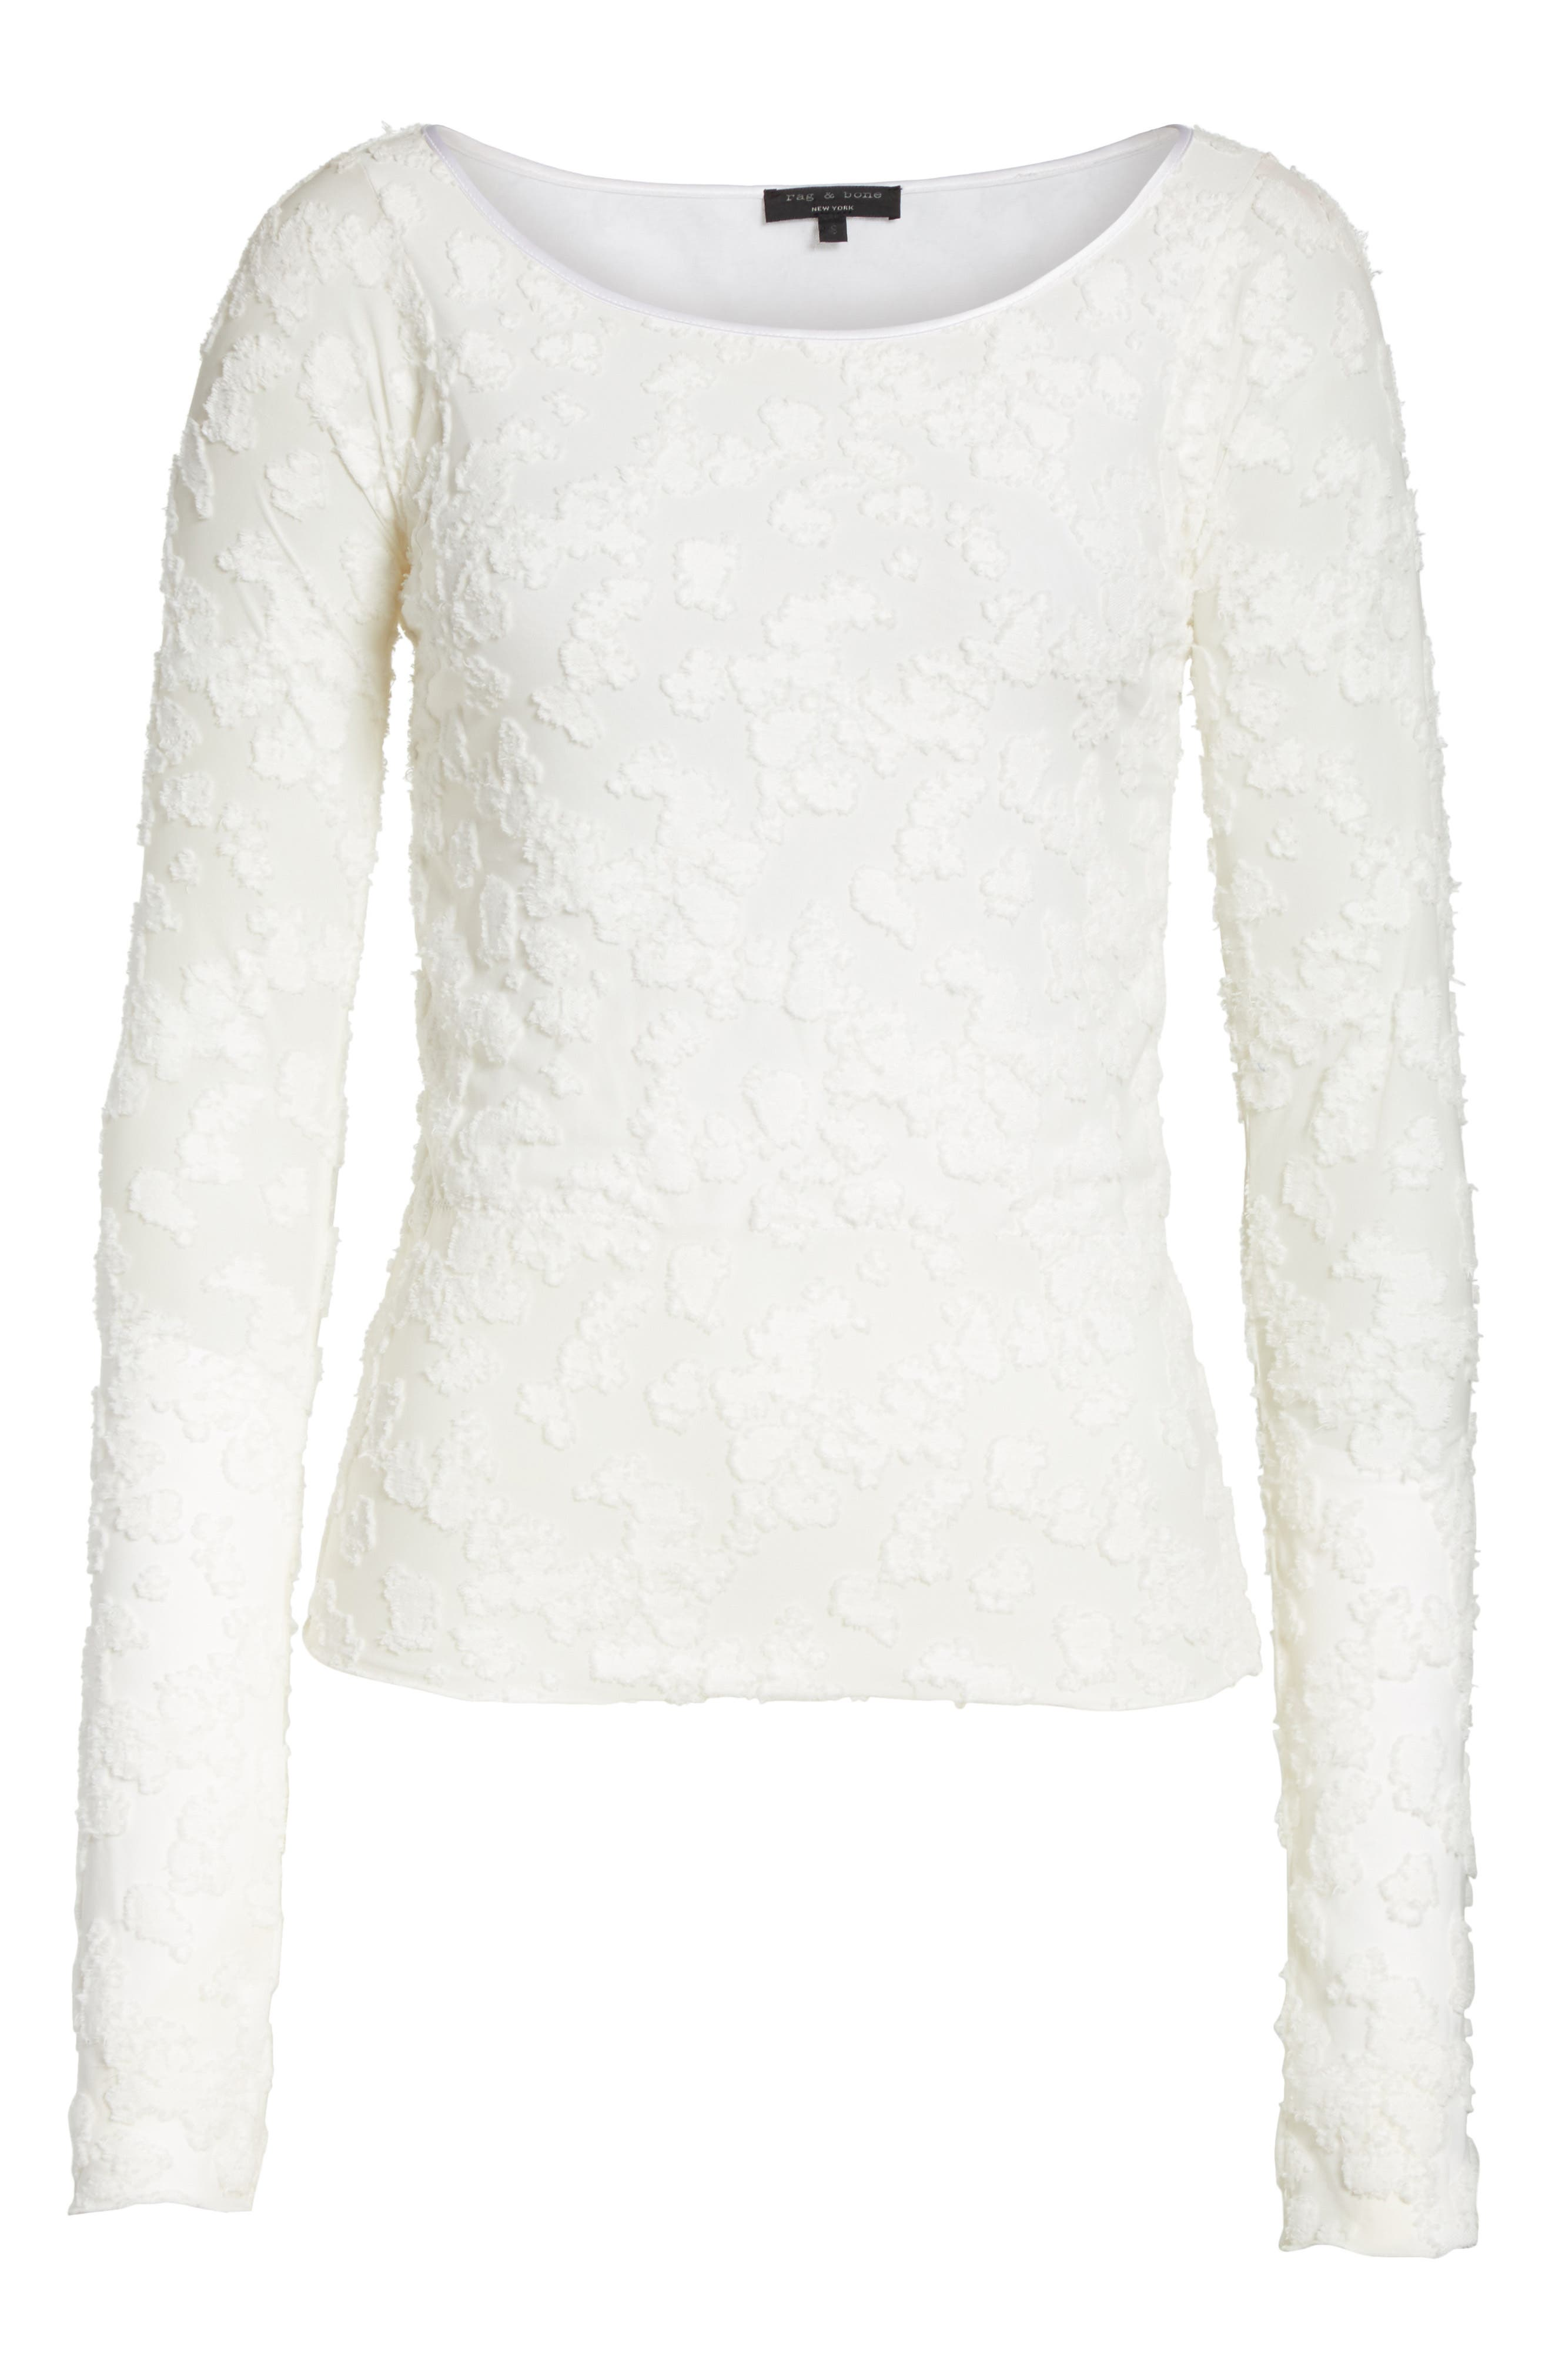 Lucie Floral Jacquard Sweater,                             Alternate thumbnail 6, color,